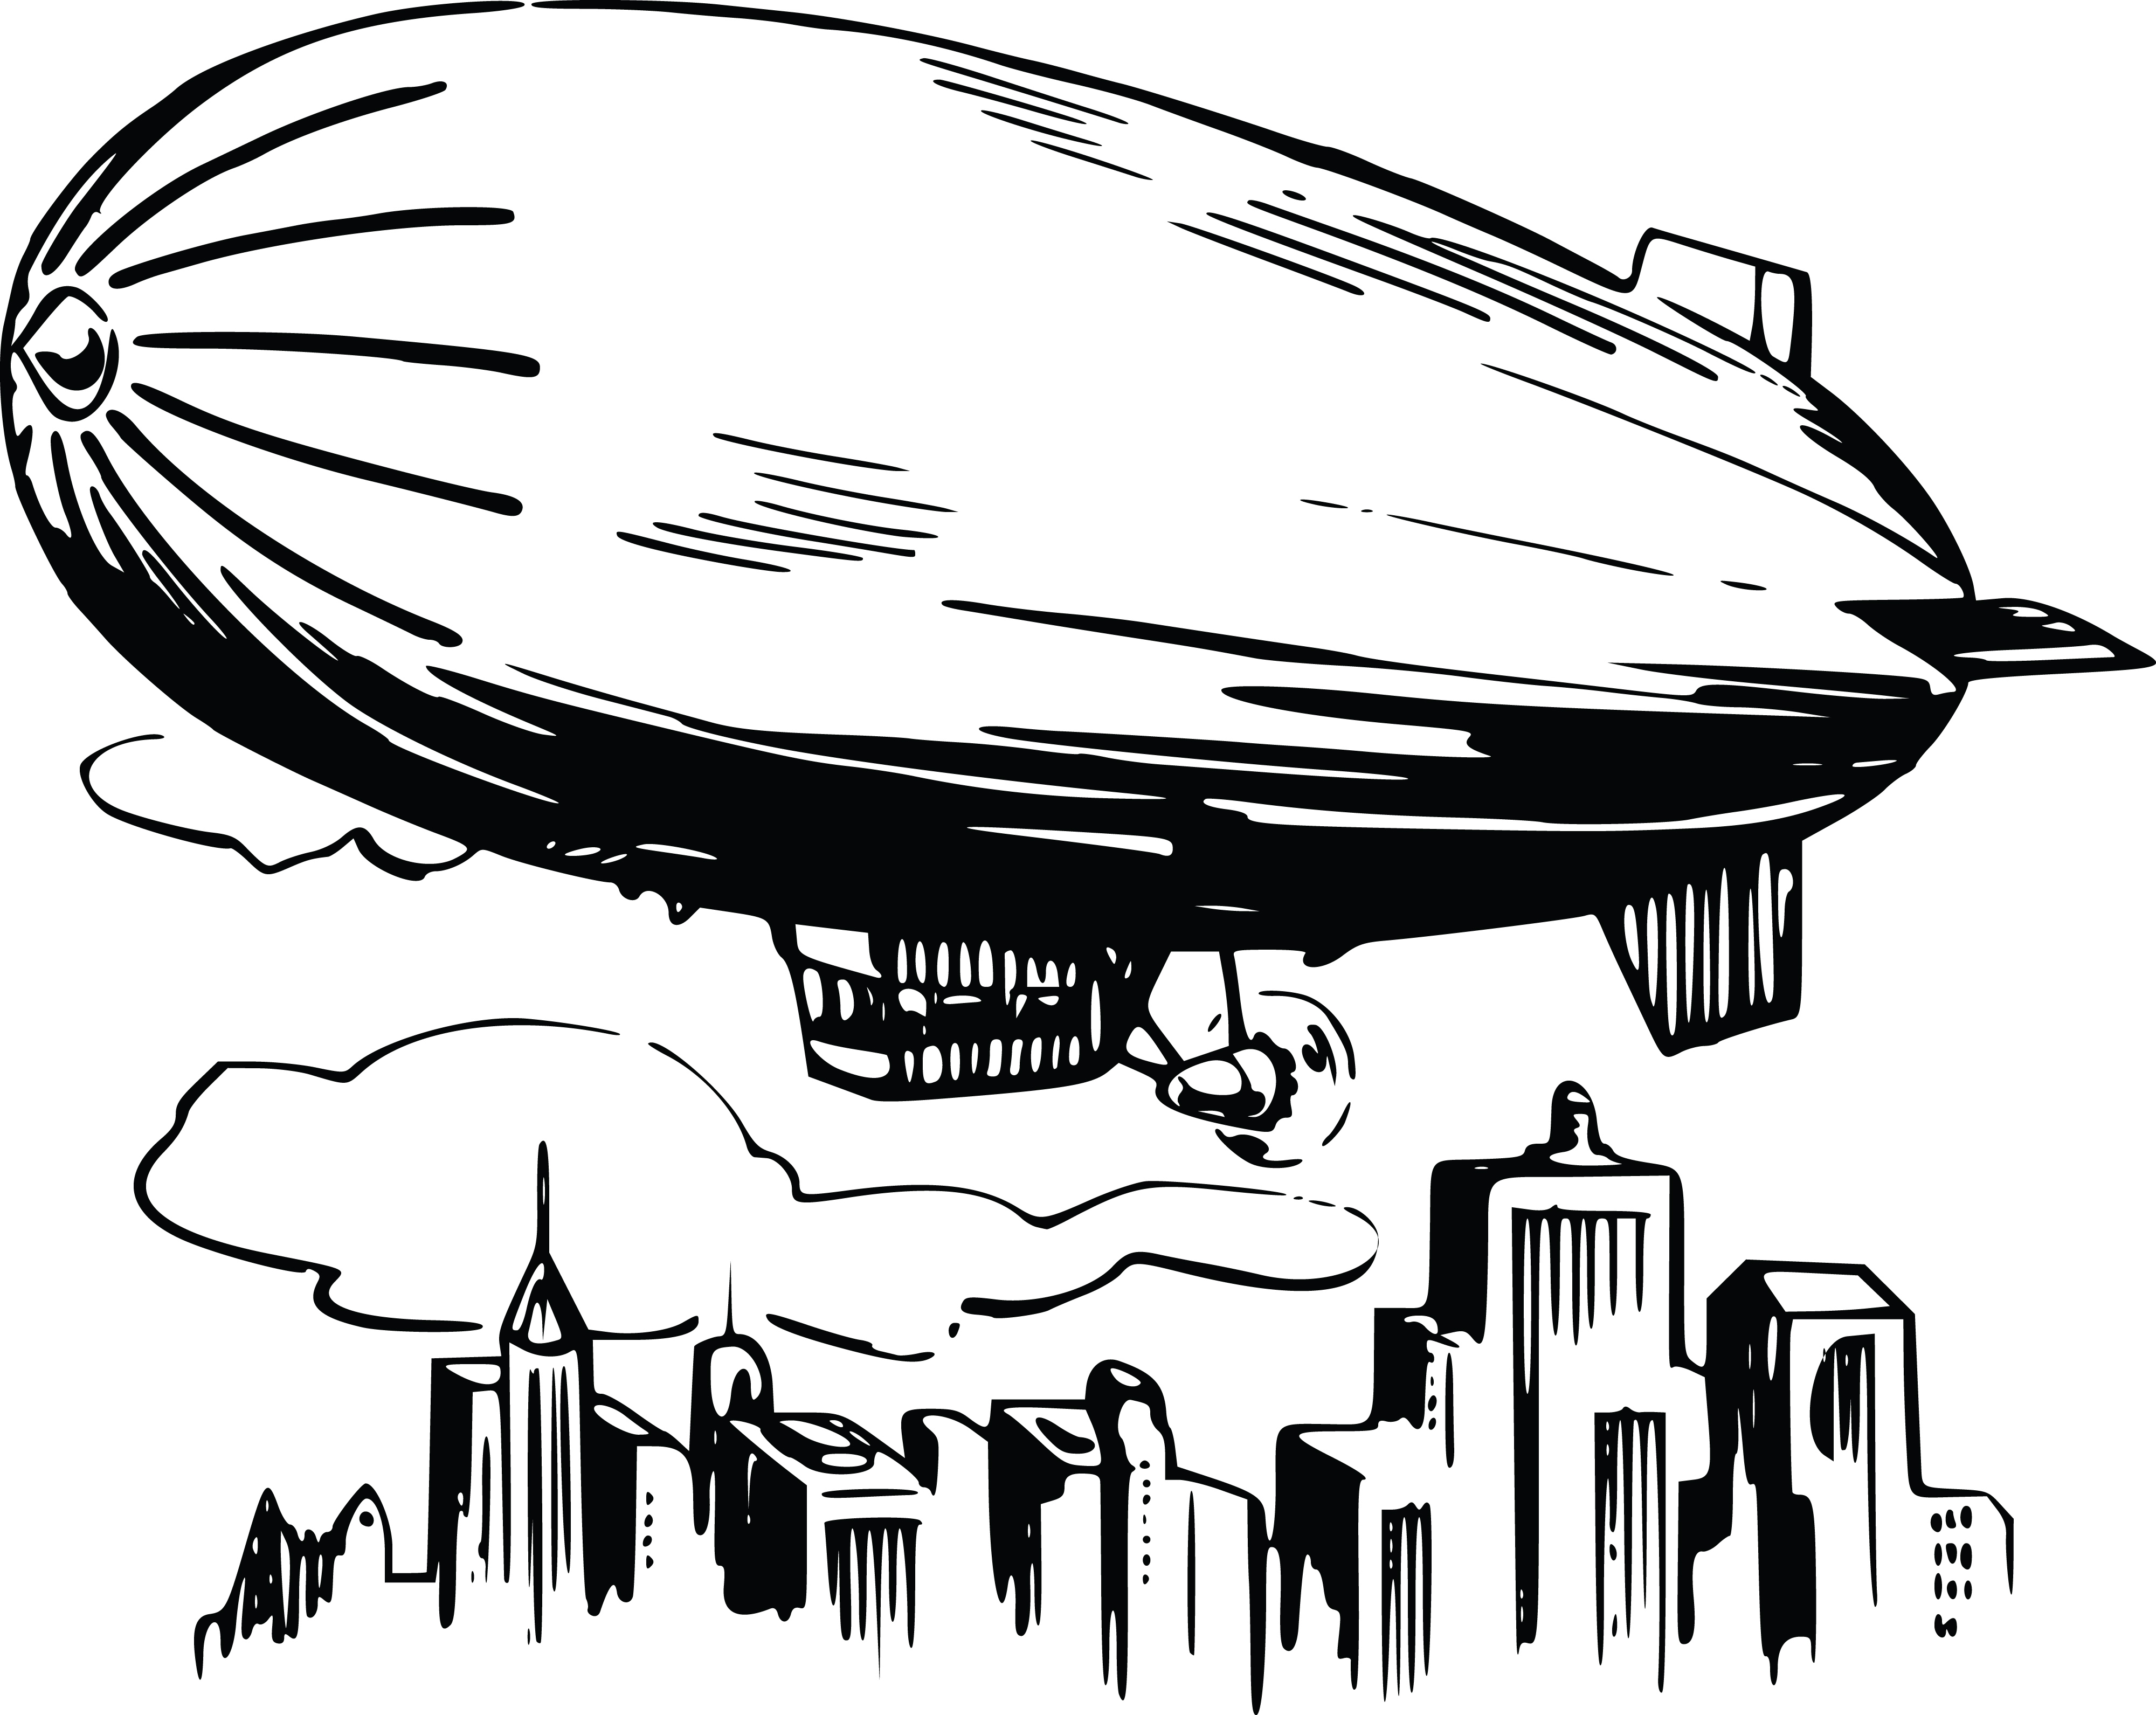 Free Clipart Of A Blimp Airship Over A City